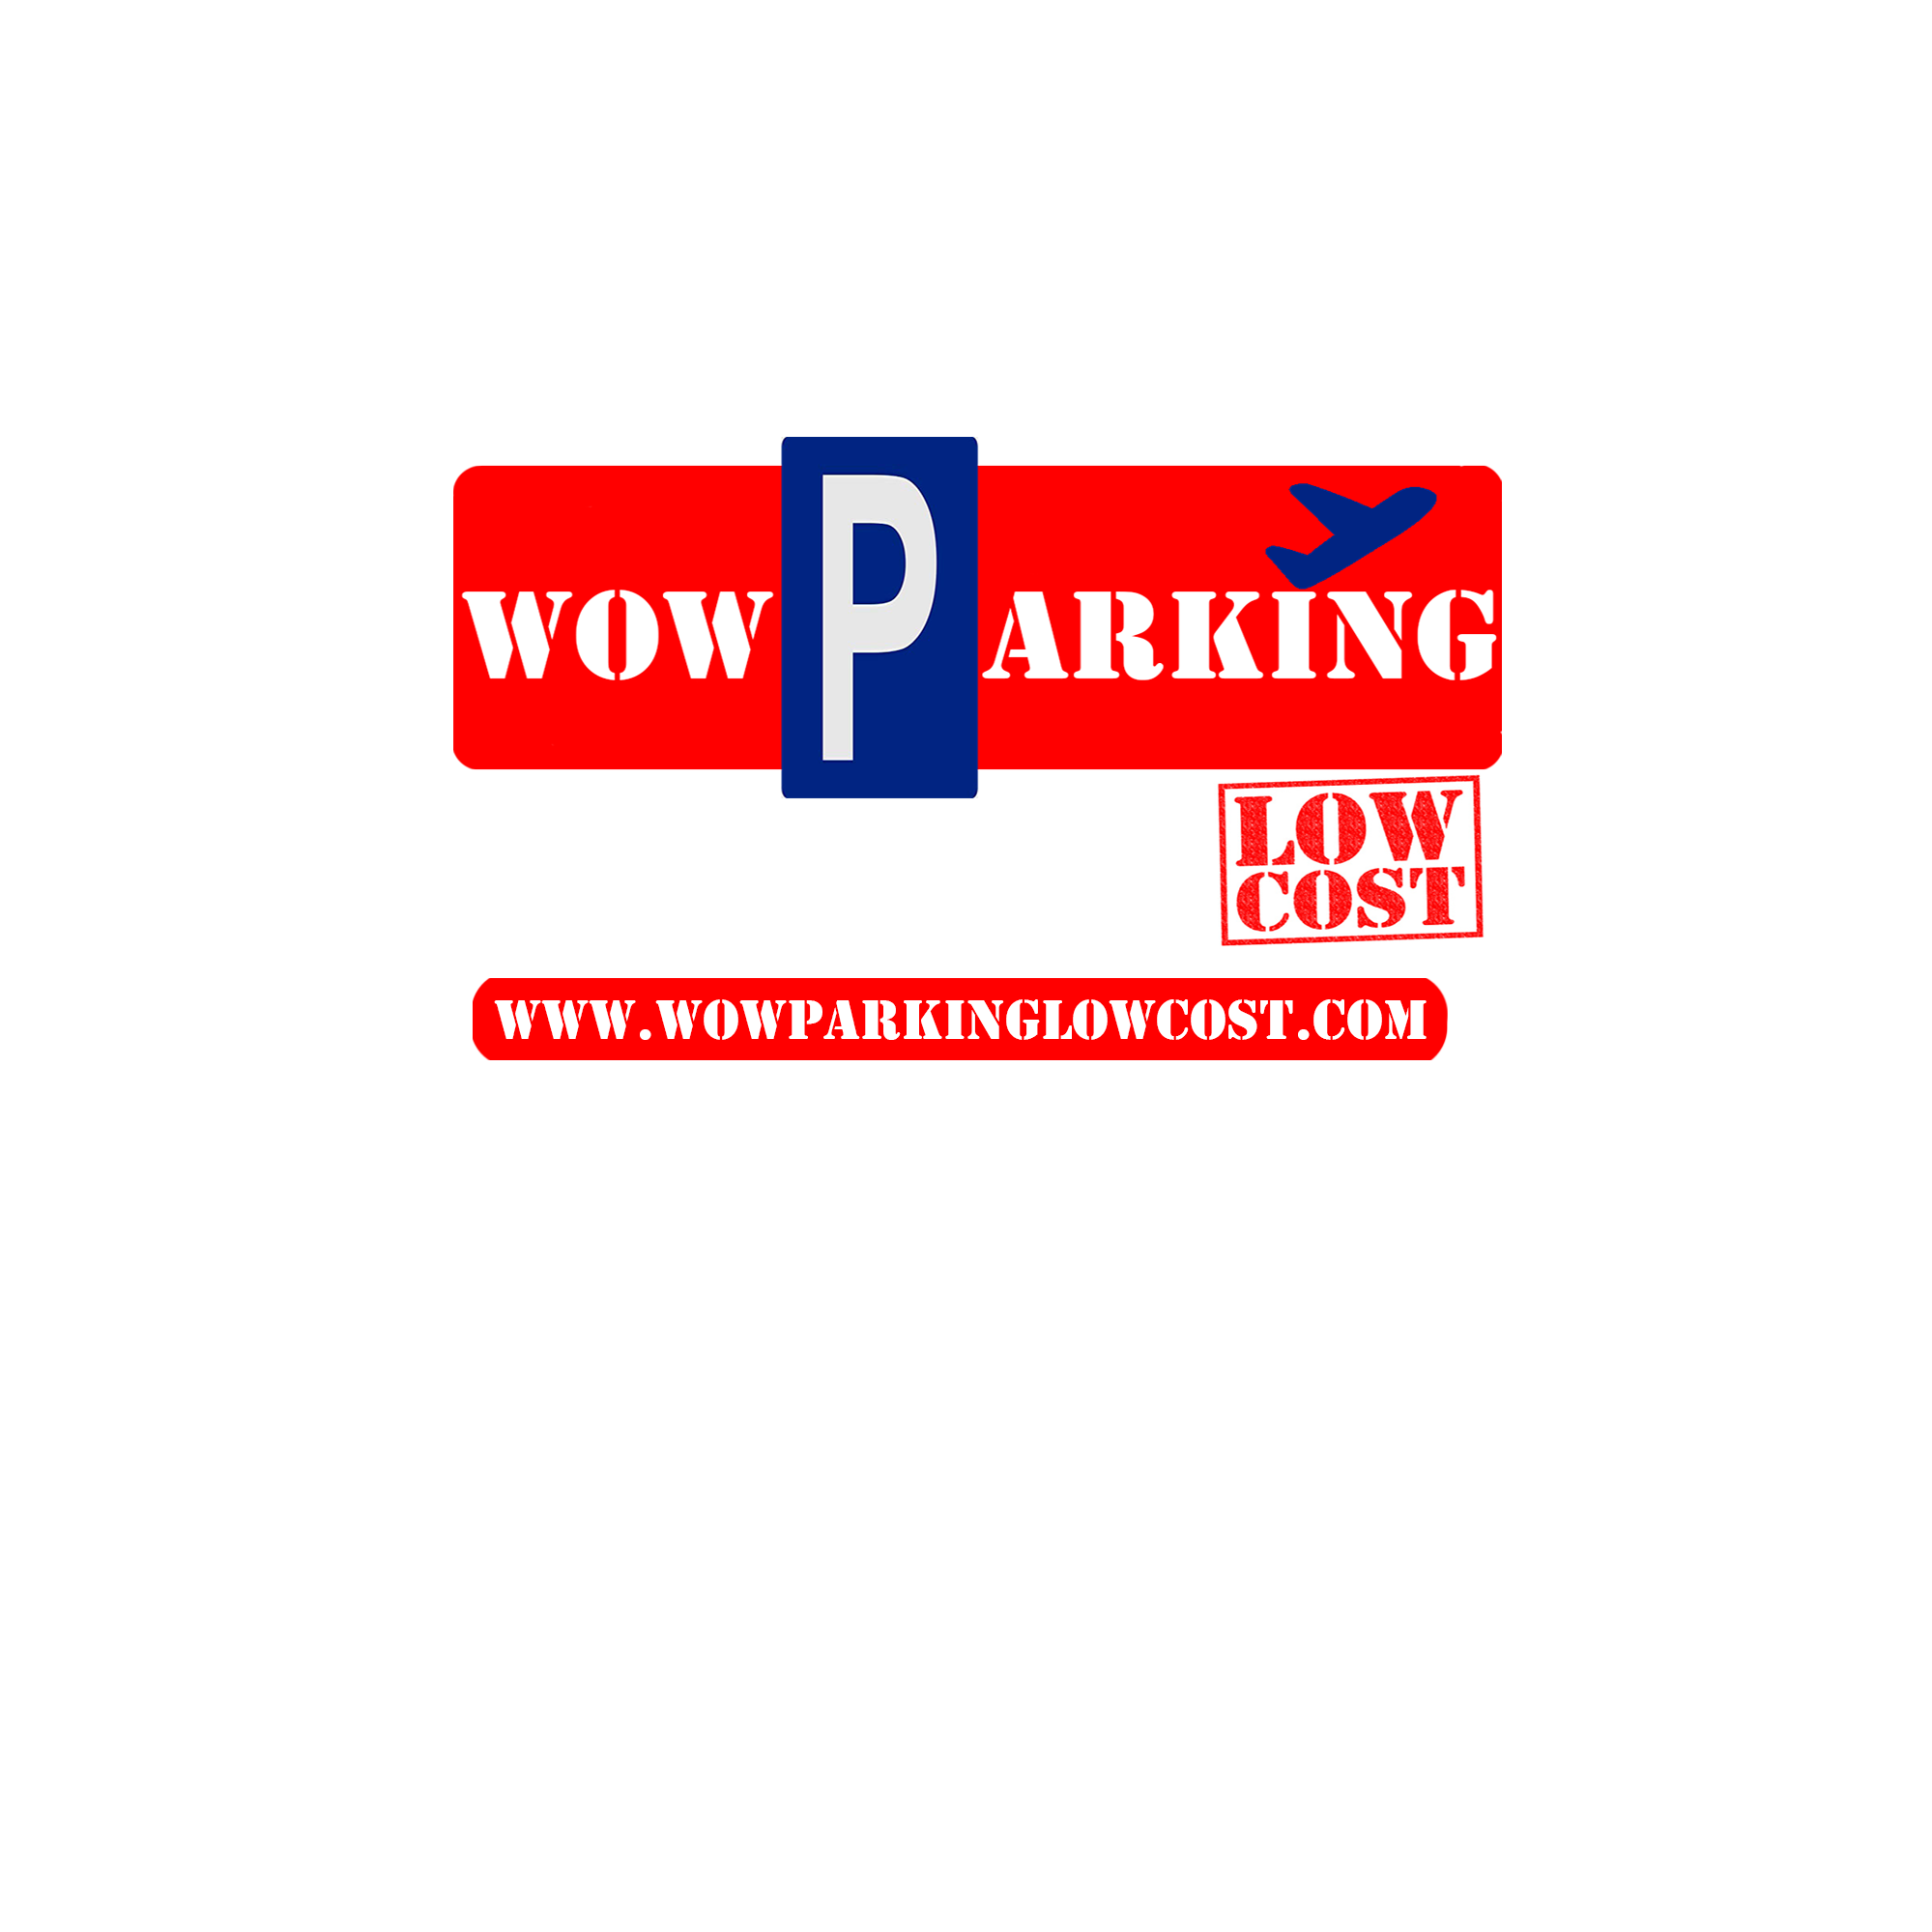 Wow Parking Low Cost